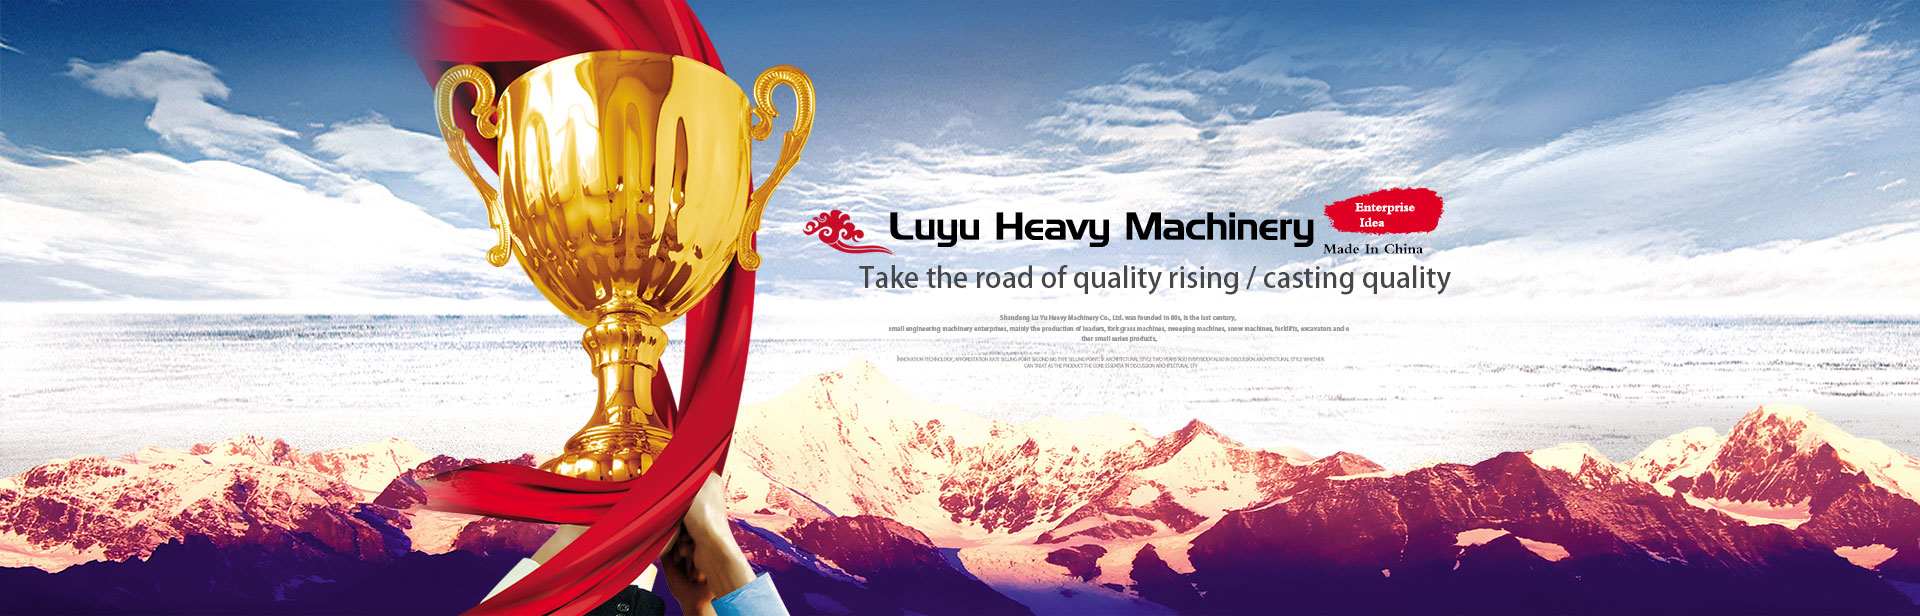 Shandong Luyu Heavy Industry Co., Ltd